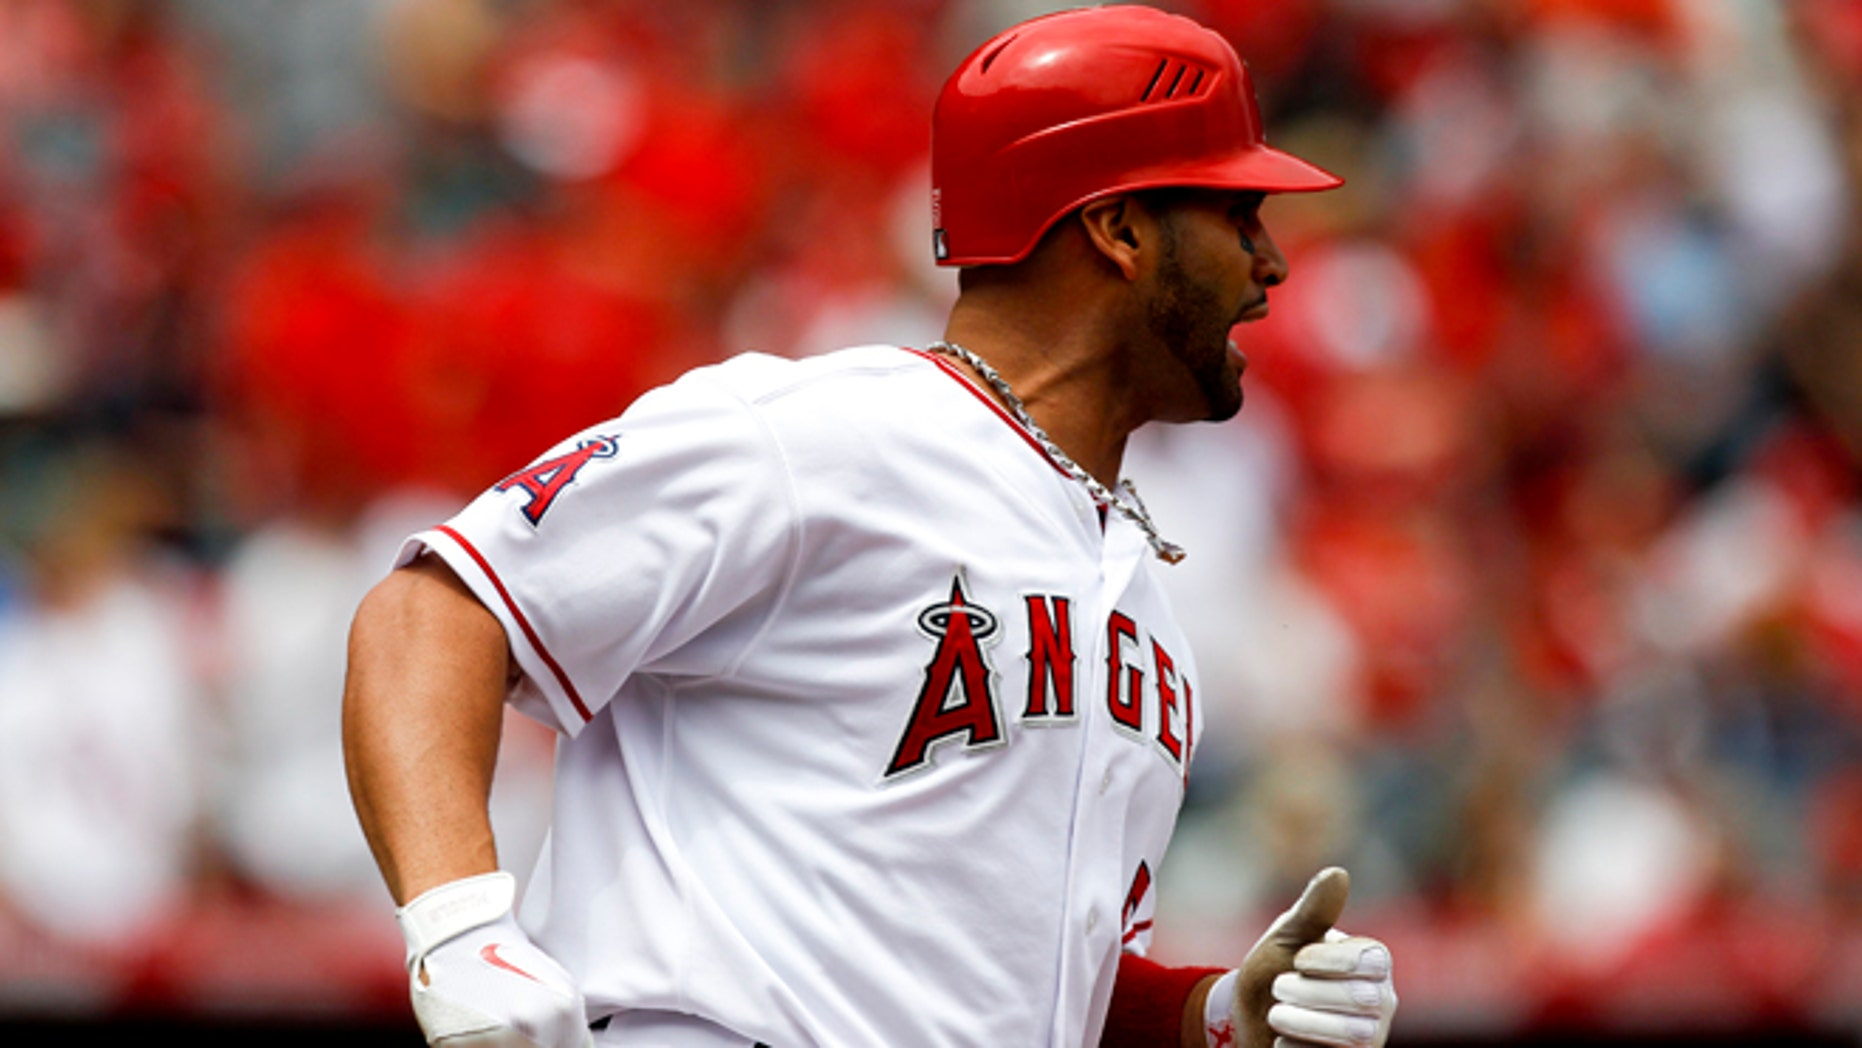 Los Angeles Angels' Albert Pujols reacts after flying out against the Baltimore Orioles during the first inning of a baseball game in Anaheim, Calif., Sunday, April 22, 2012. (AP Photo/Chris Carlson)